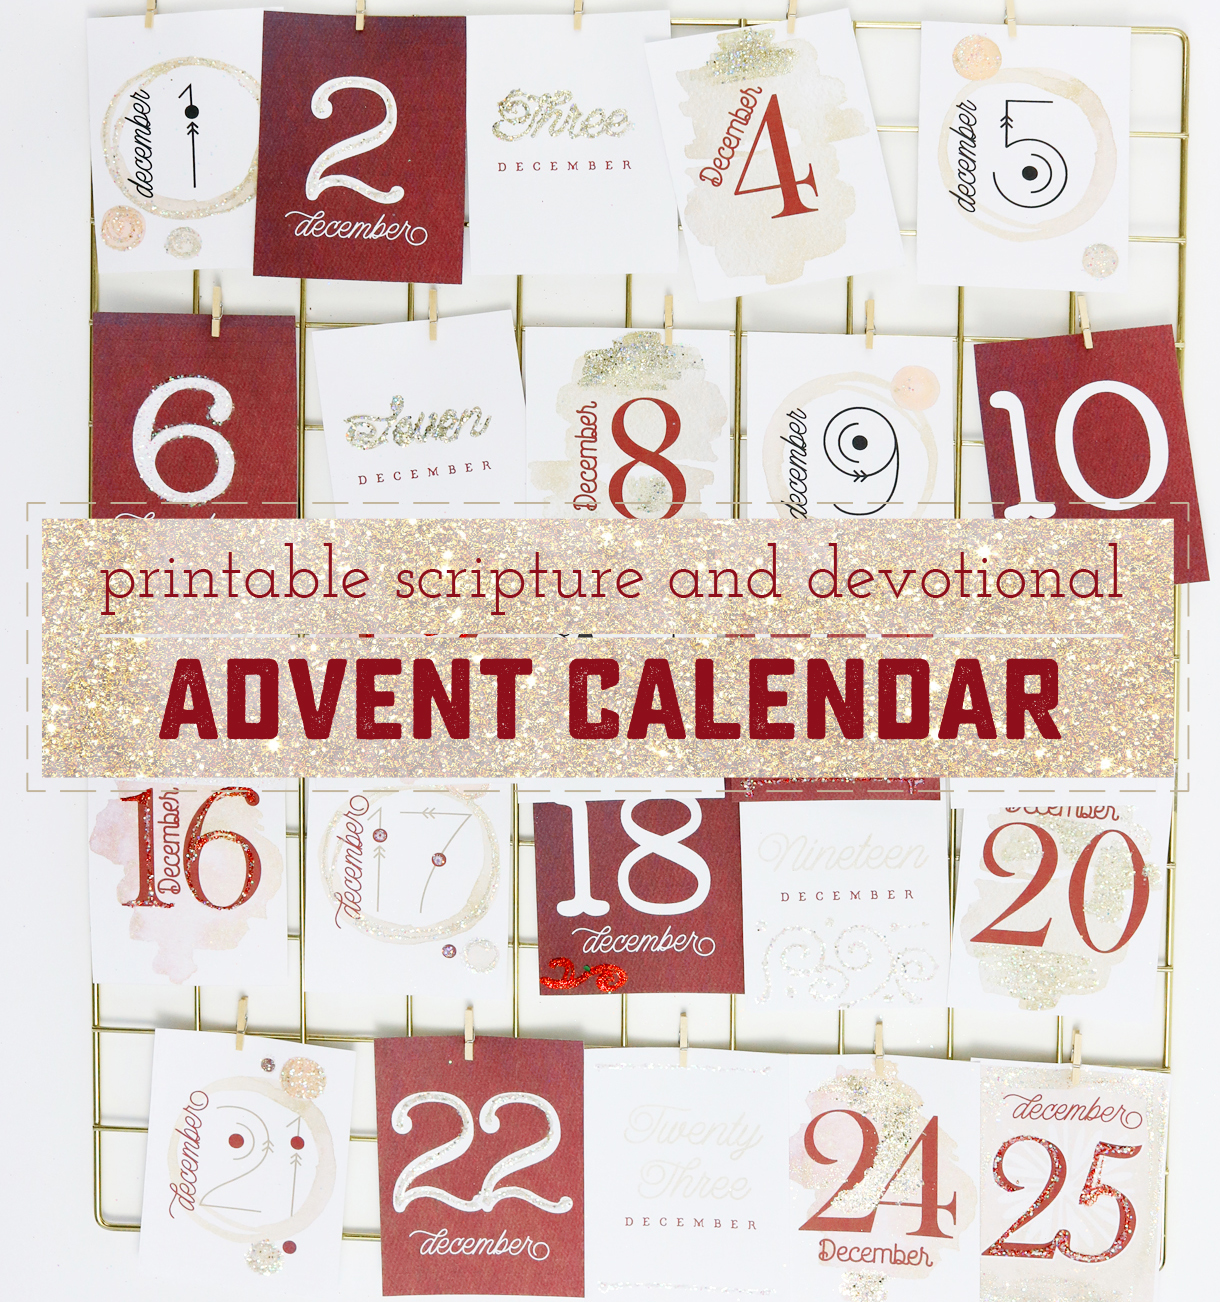 image regarding Advent Calendar Printable titled How in the direction of Create a Attractive and Significant Printable Arrival